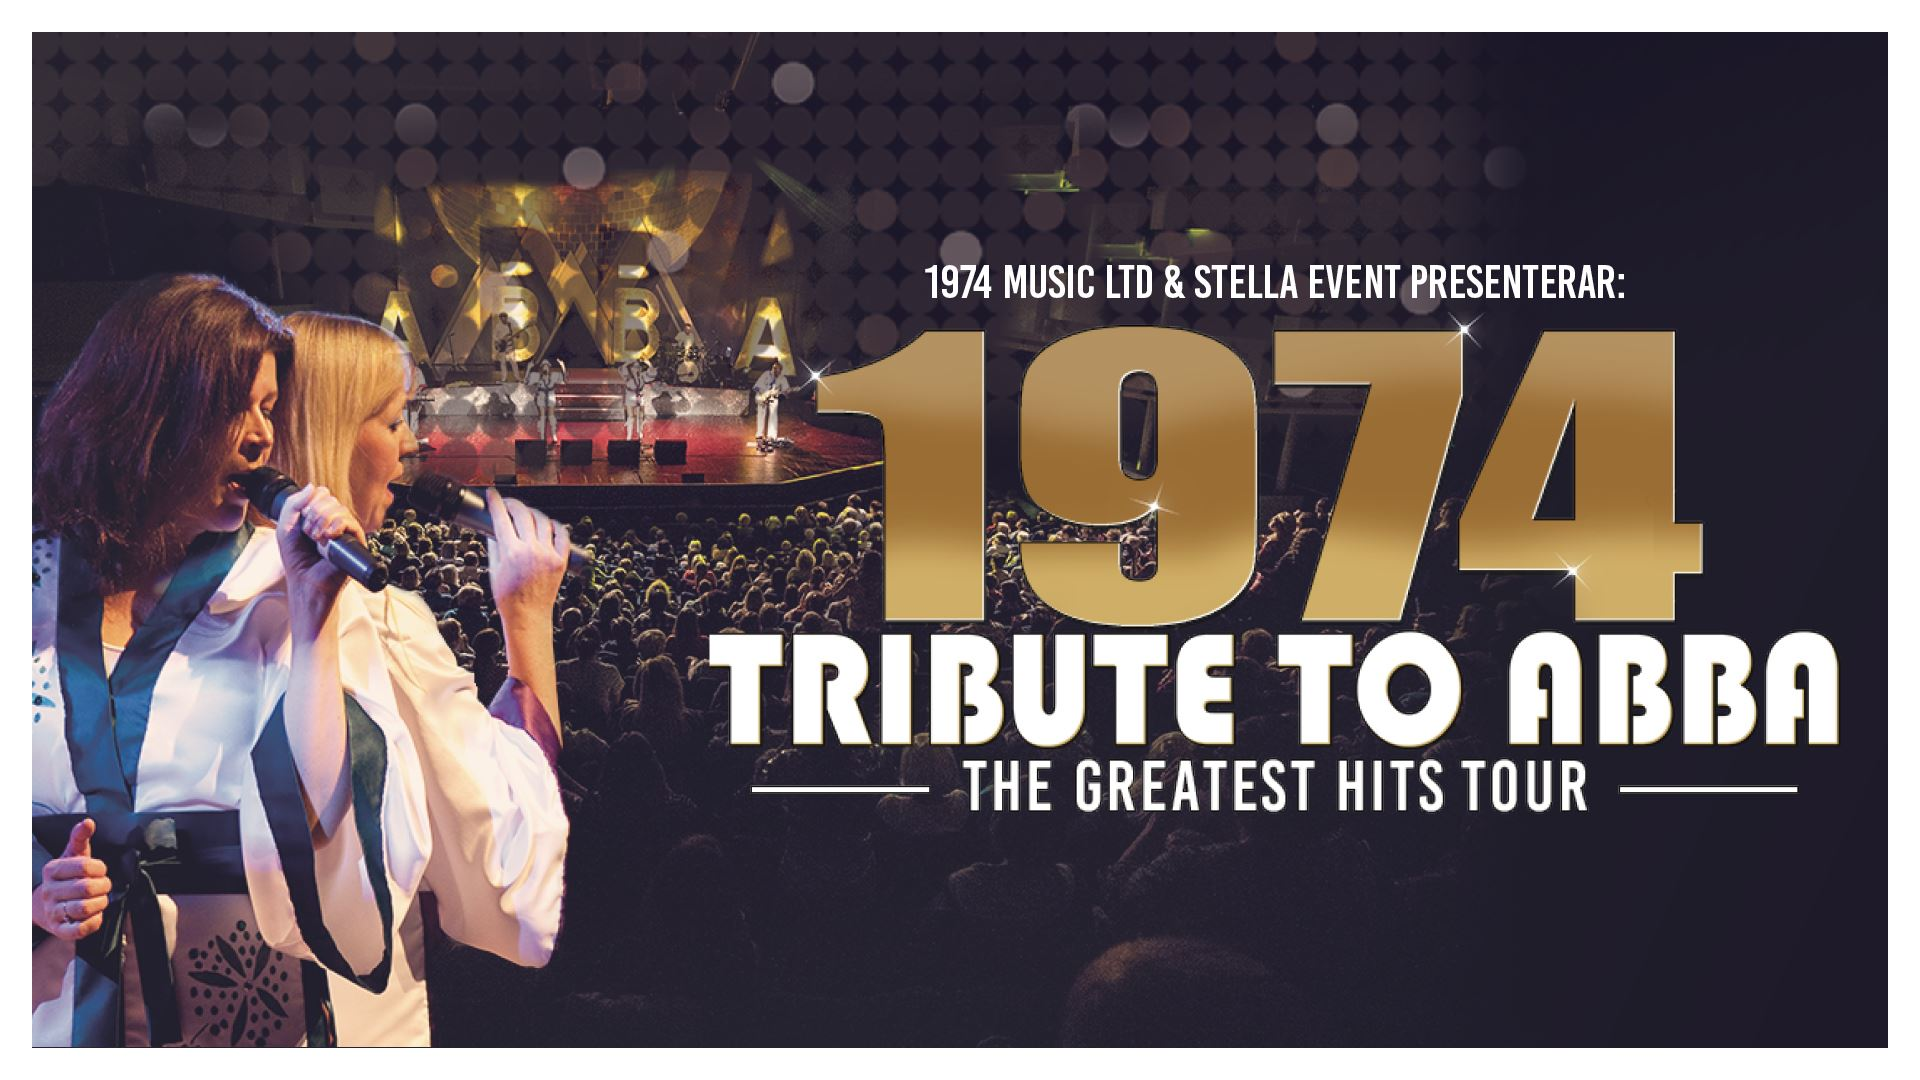 The 1974 tribute to ABBA Show